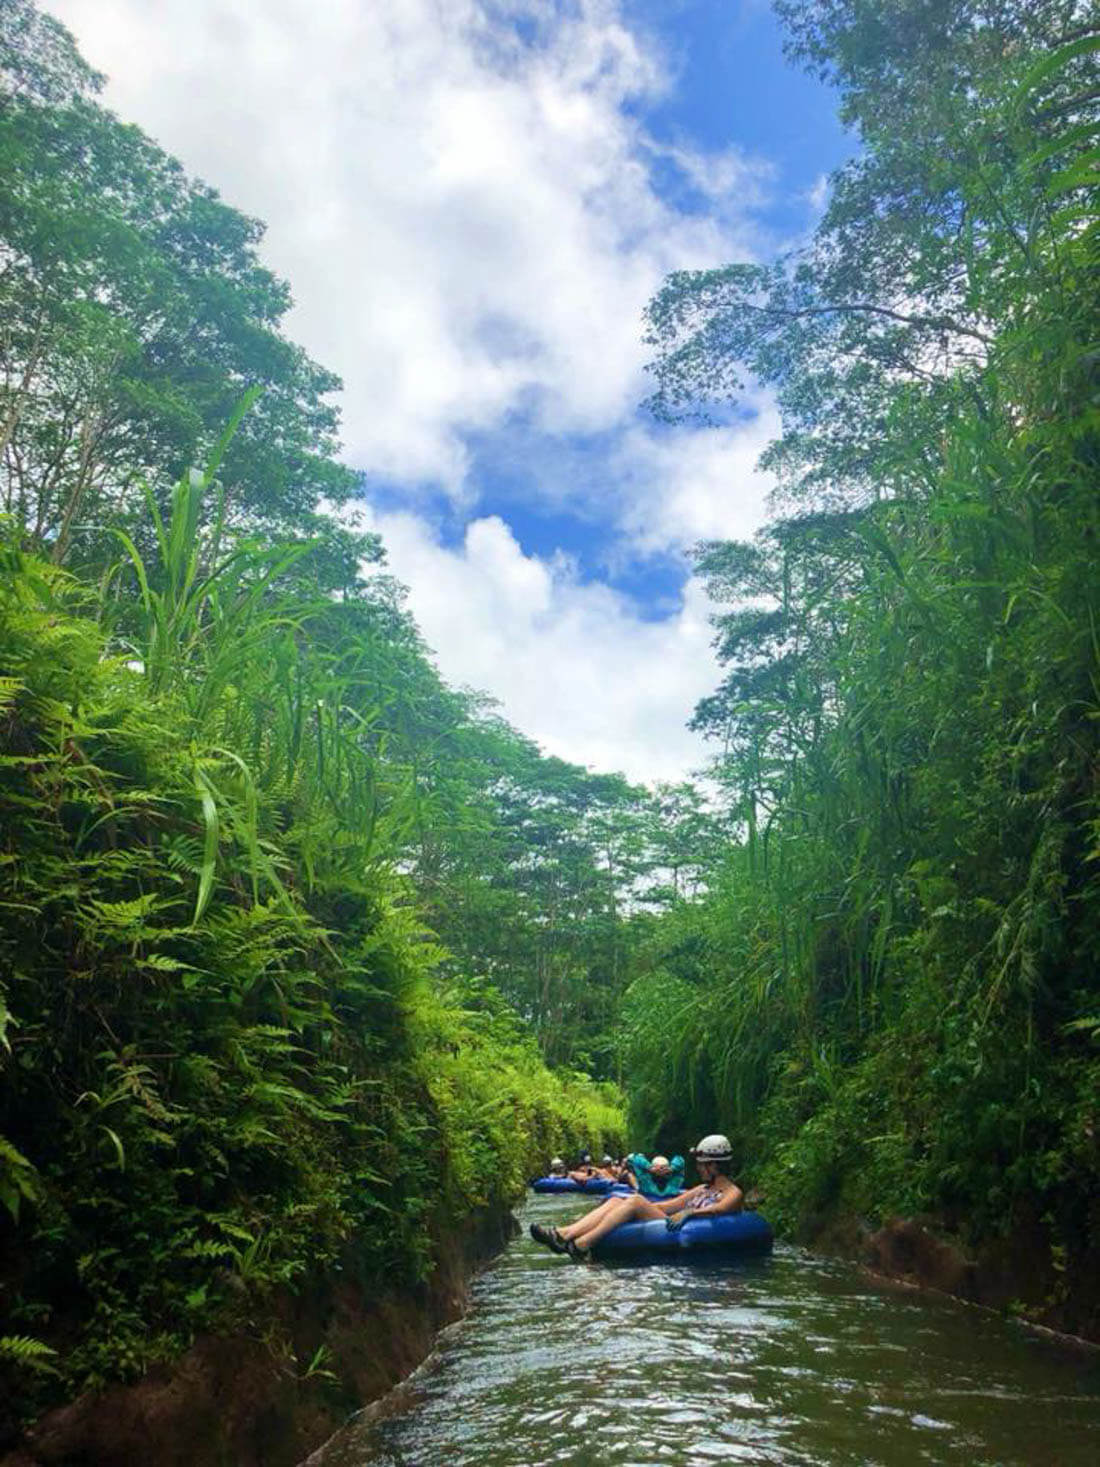 Kauai Tubing - going down the sugar cane canal